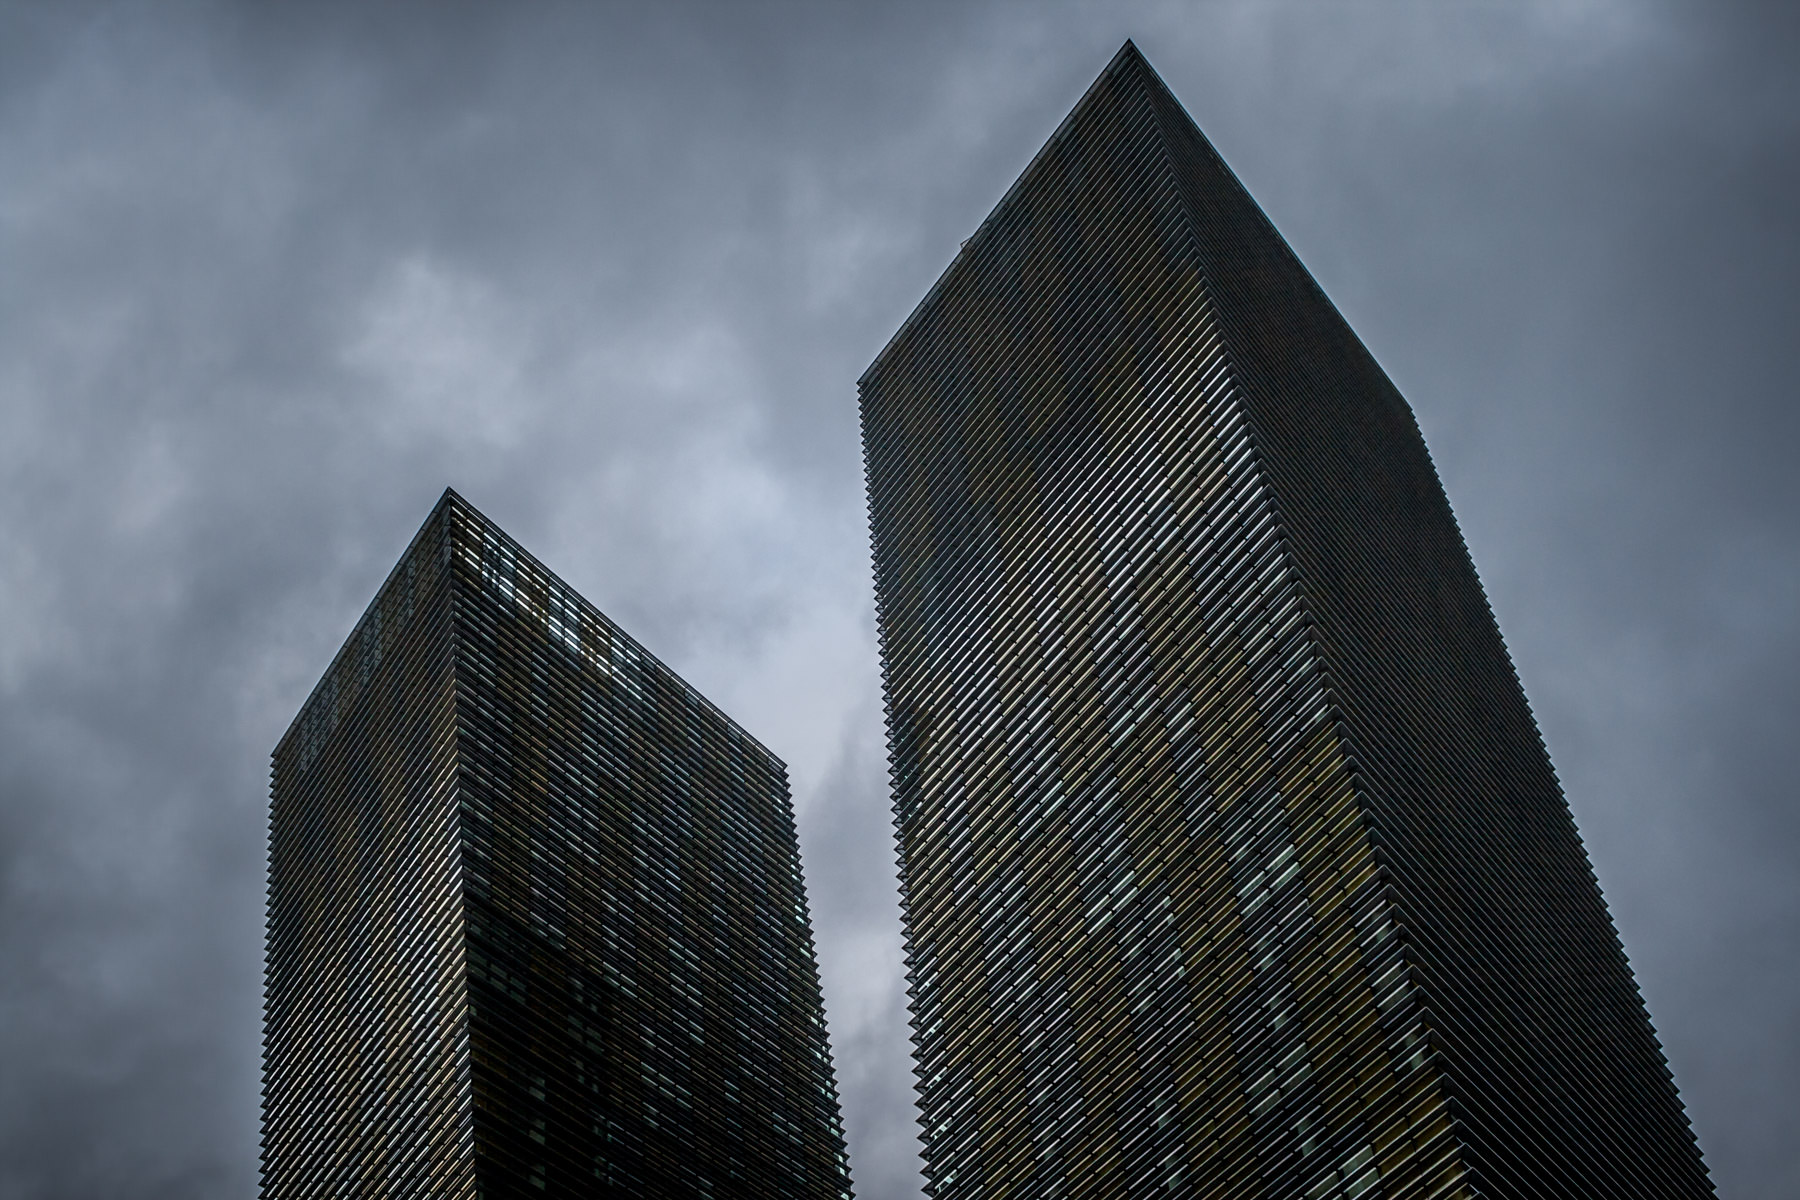 Storm clouds form over the Las Vegas Valley in this shot of CityCenter's Veer Towers.